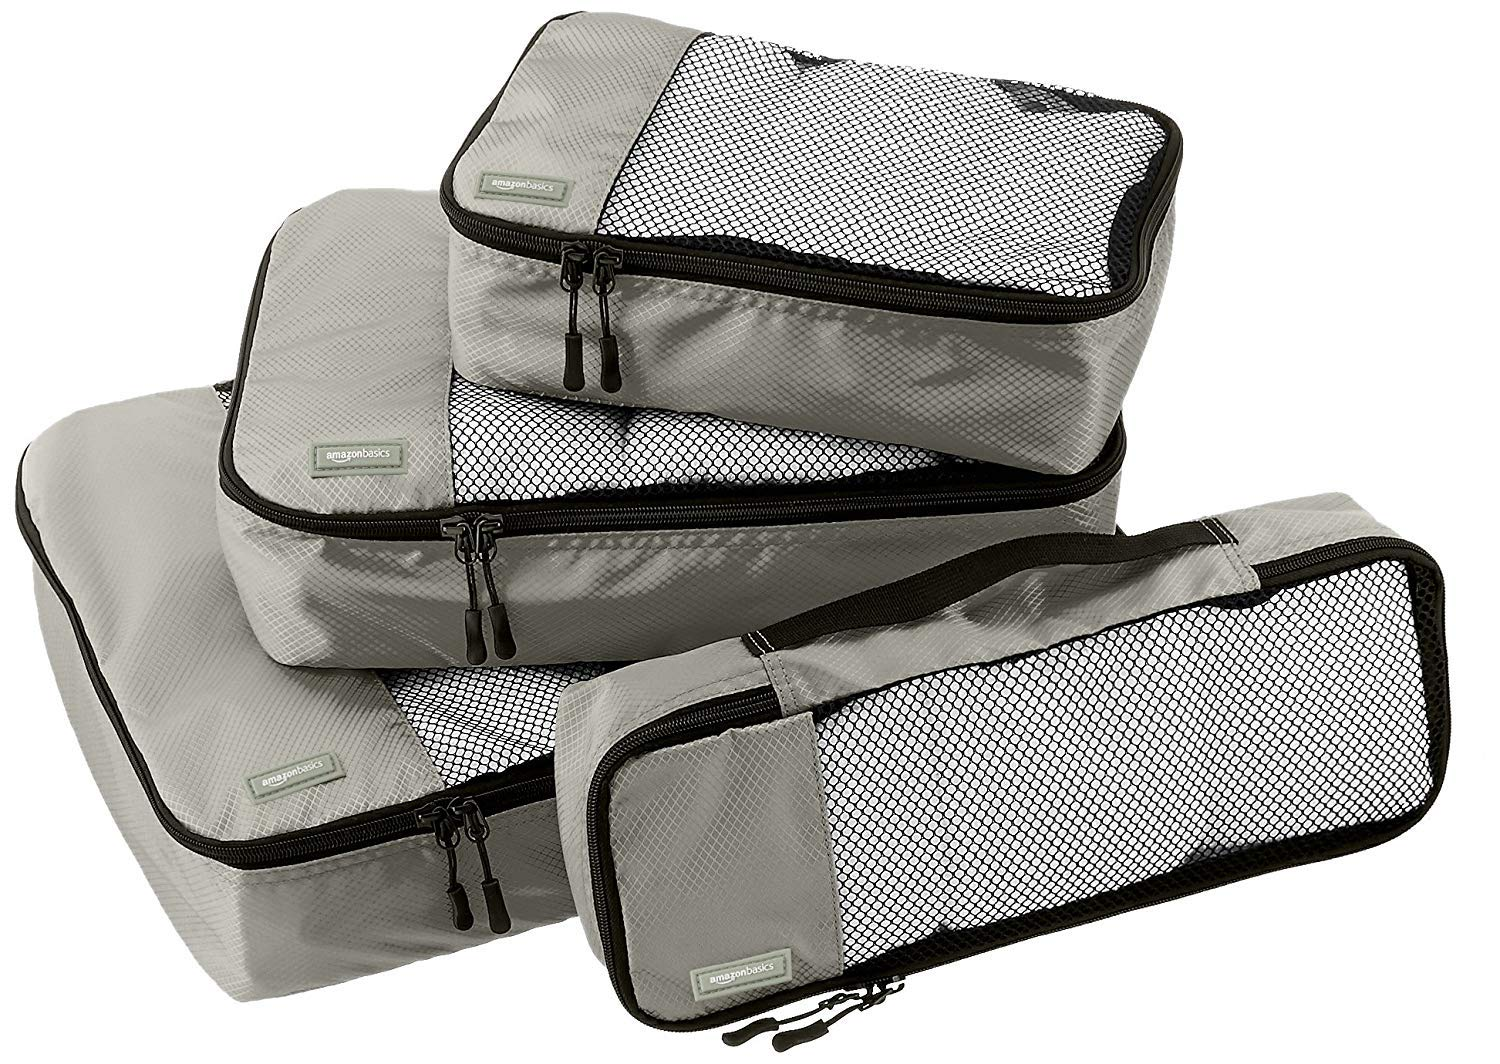 Amazon Basics 4 Piece Packing Travel Organizer Cubes Set, Grey